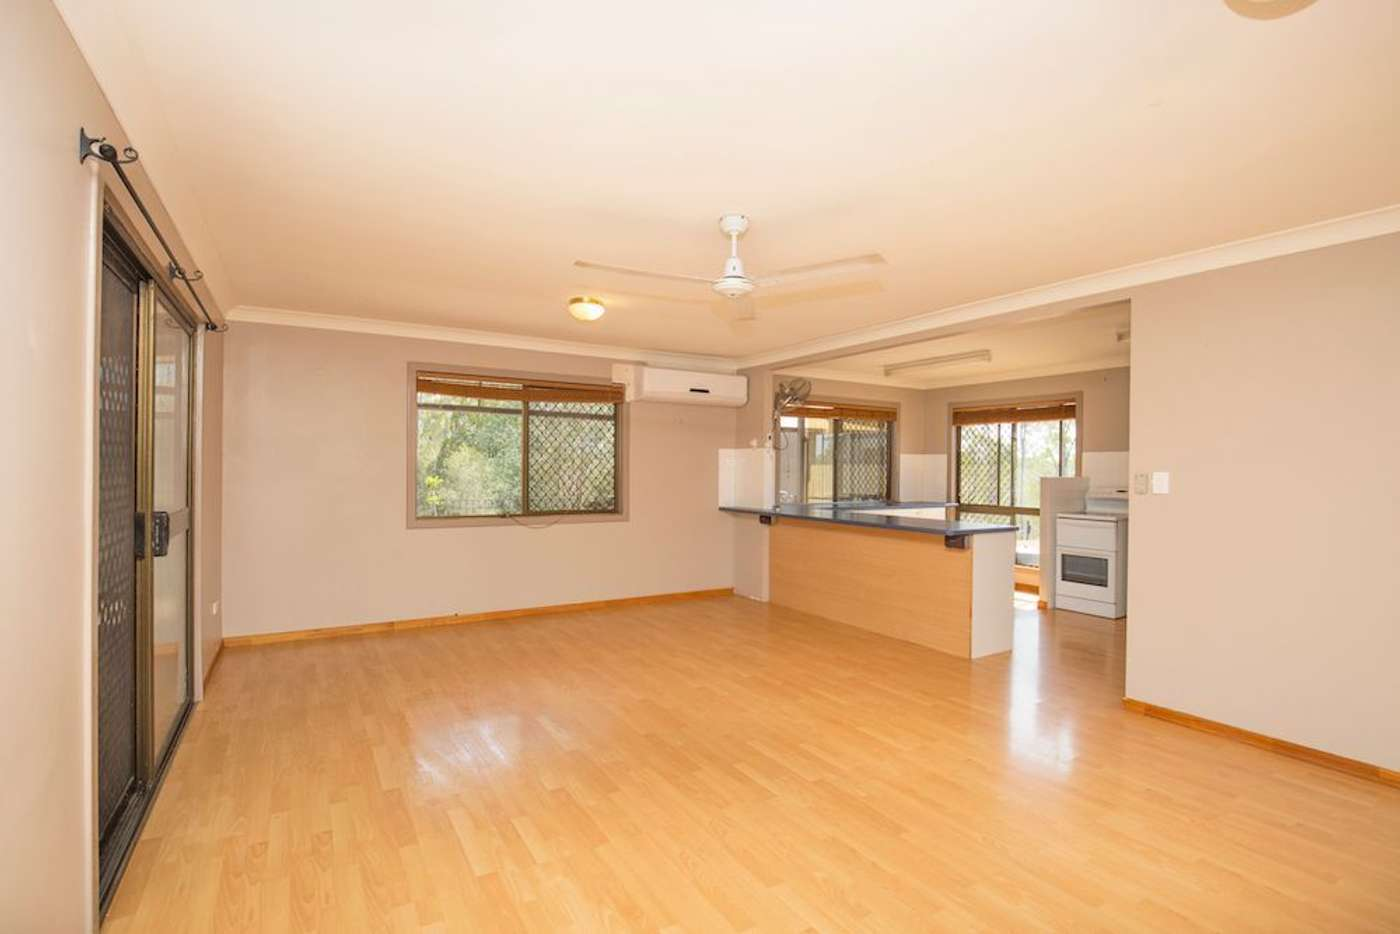 Sixth view of Homely house listing, 143 Bunns Road, Apple Tree Creek QLD 4660